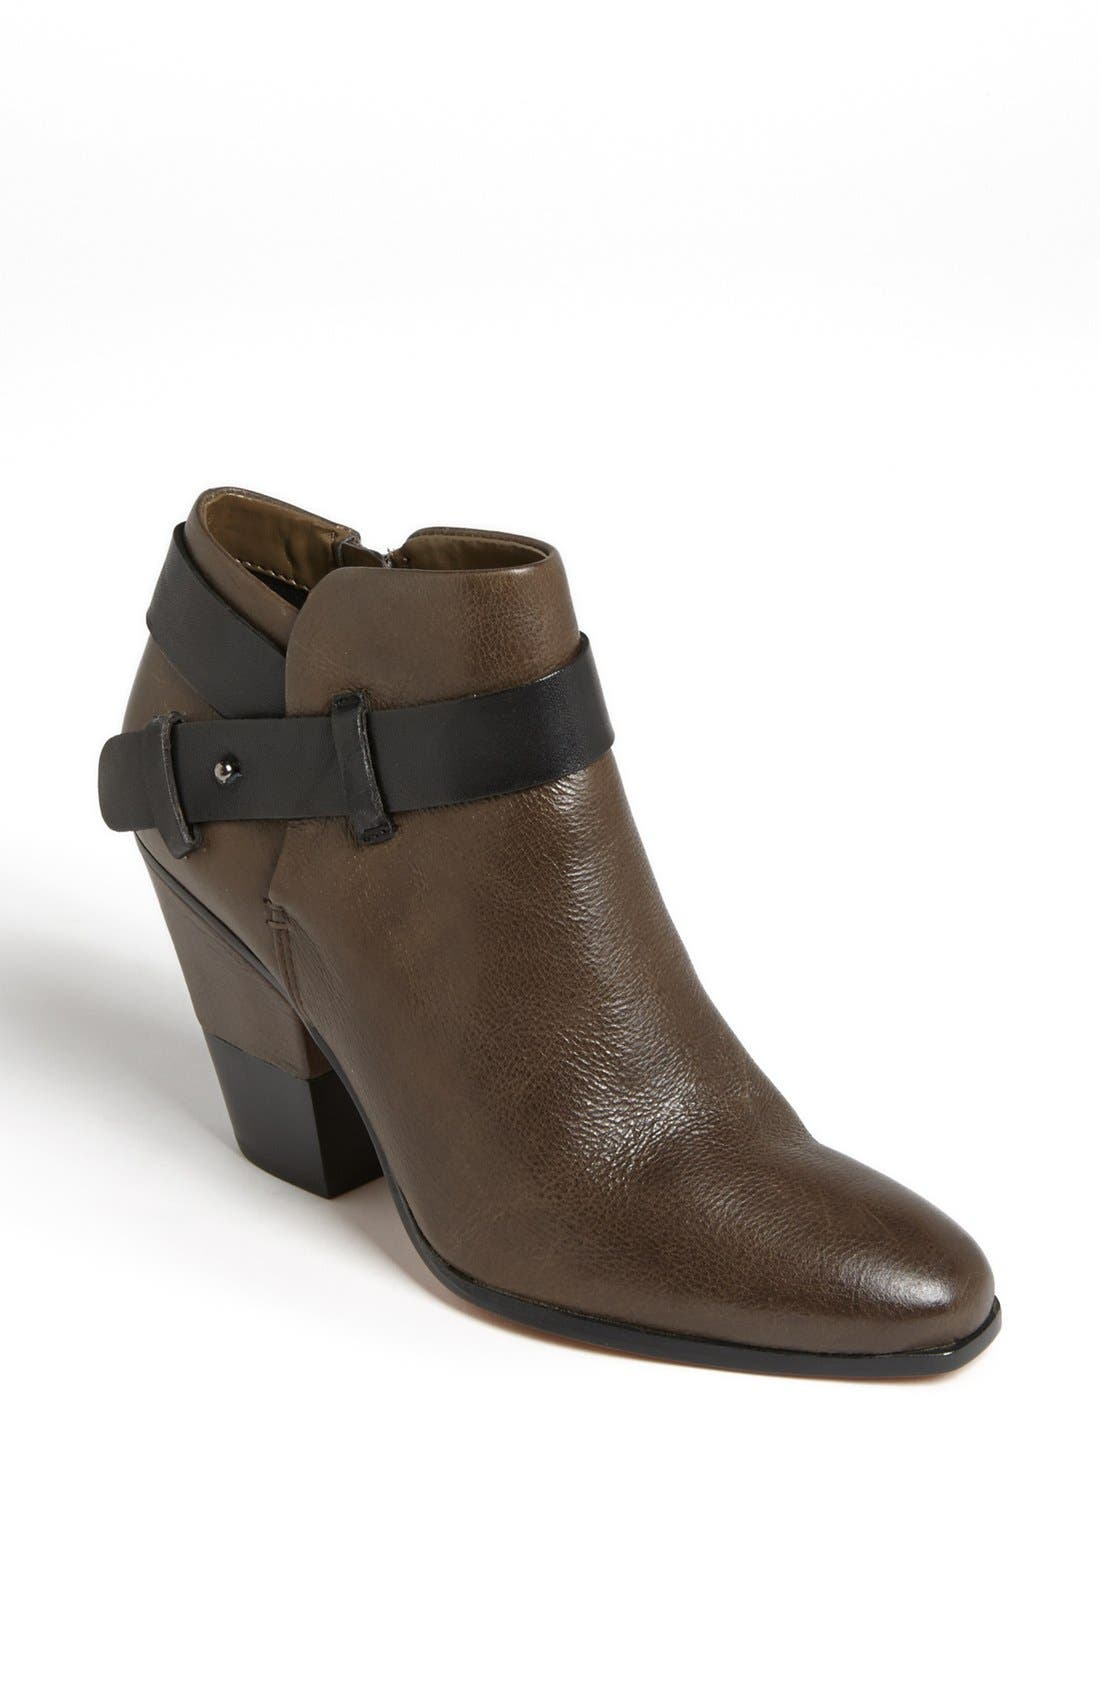 Main Image - Dolce Vita 'Hilary' Bootie